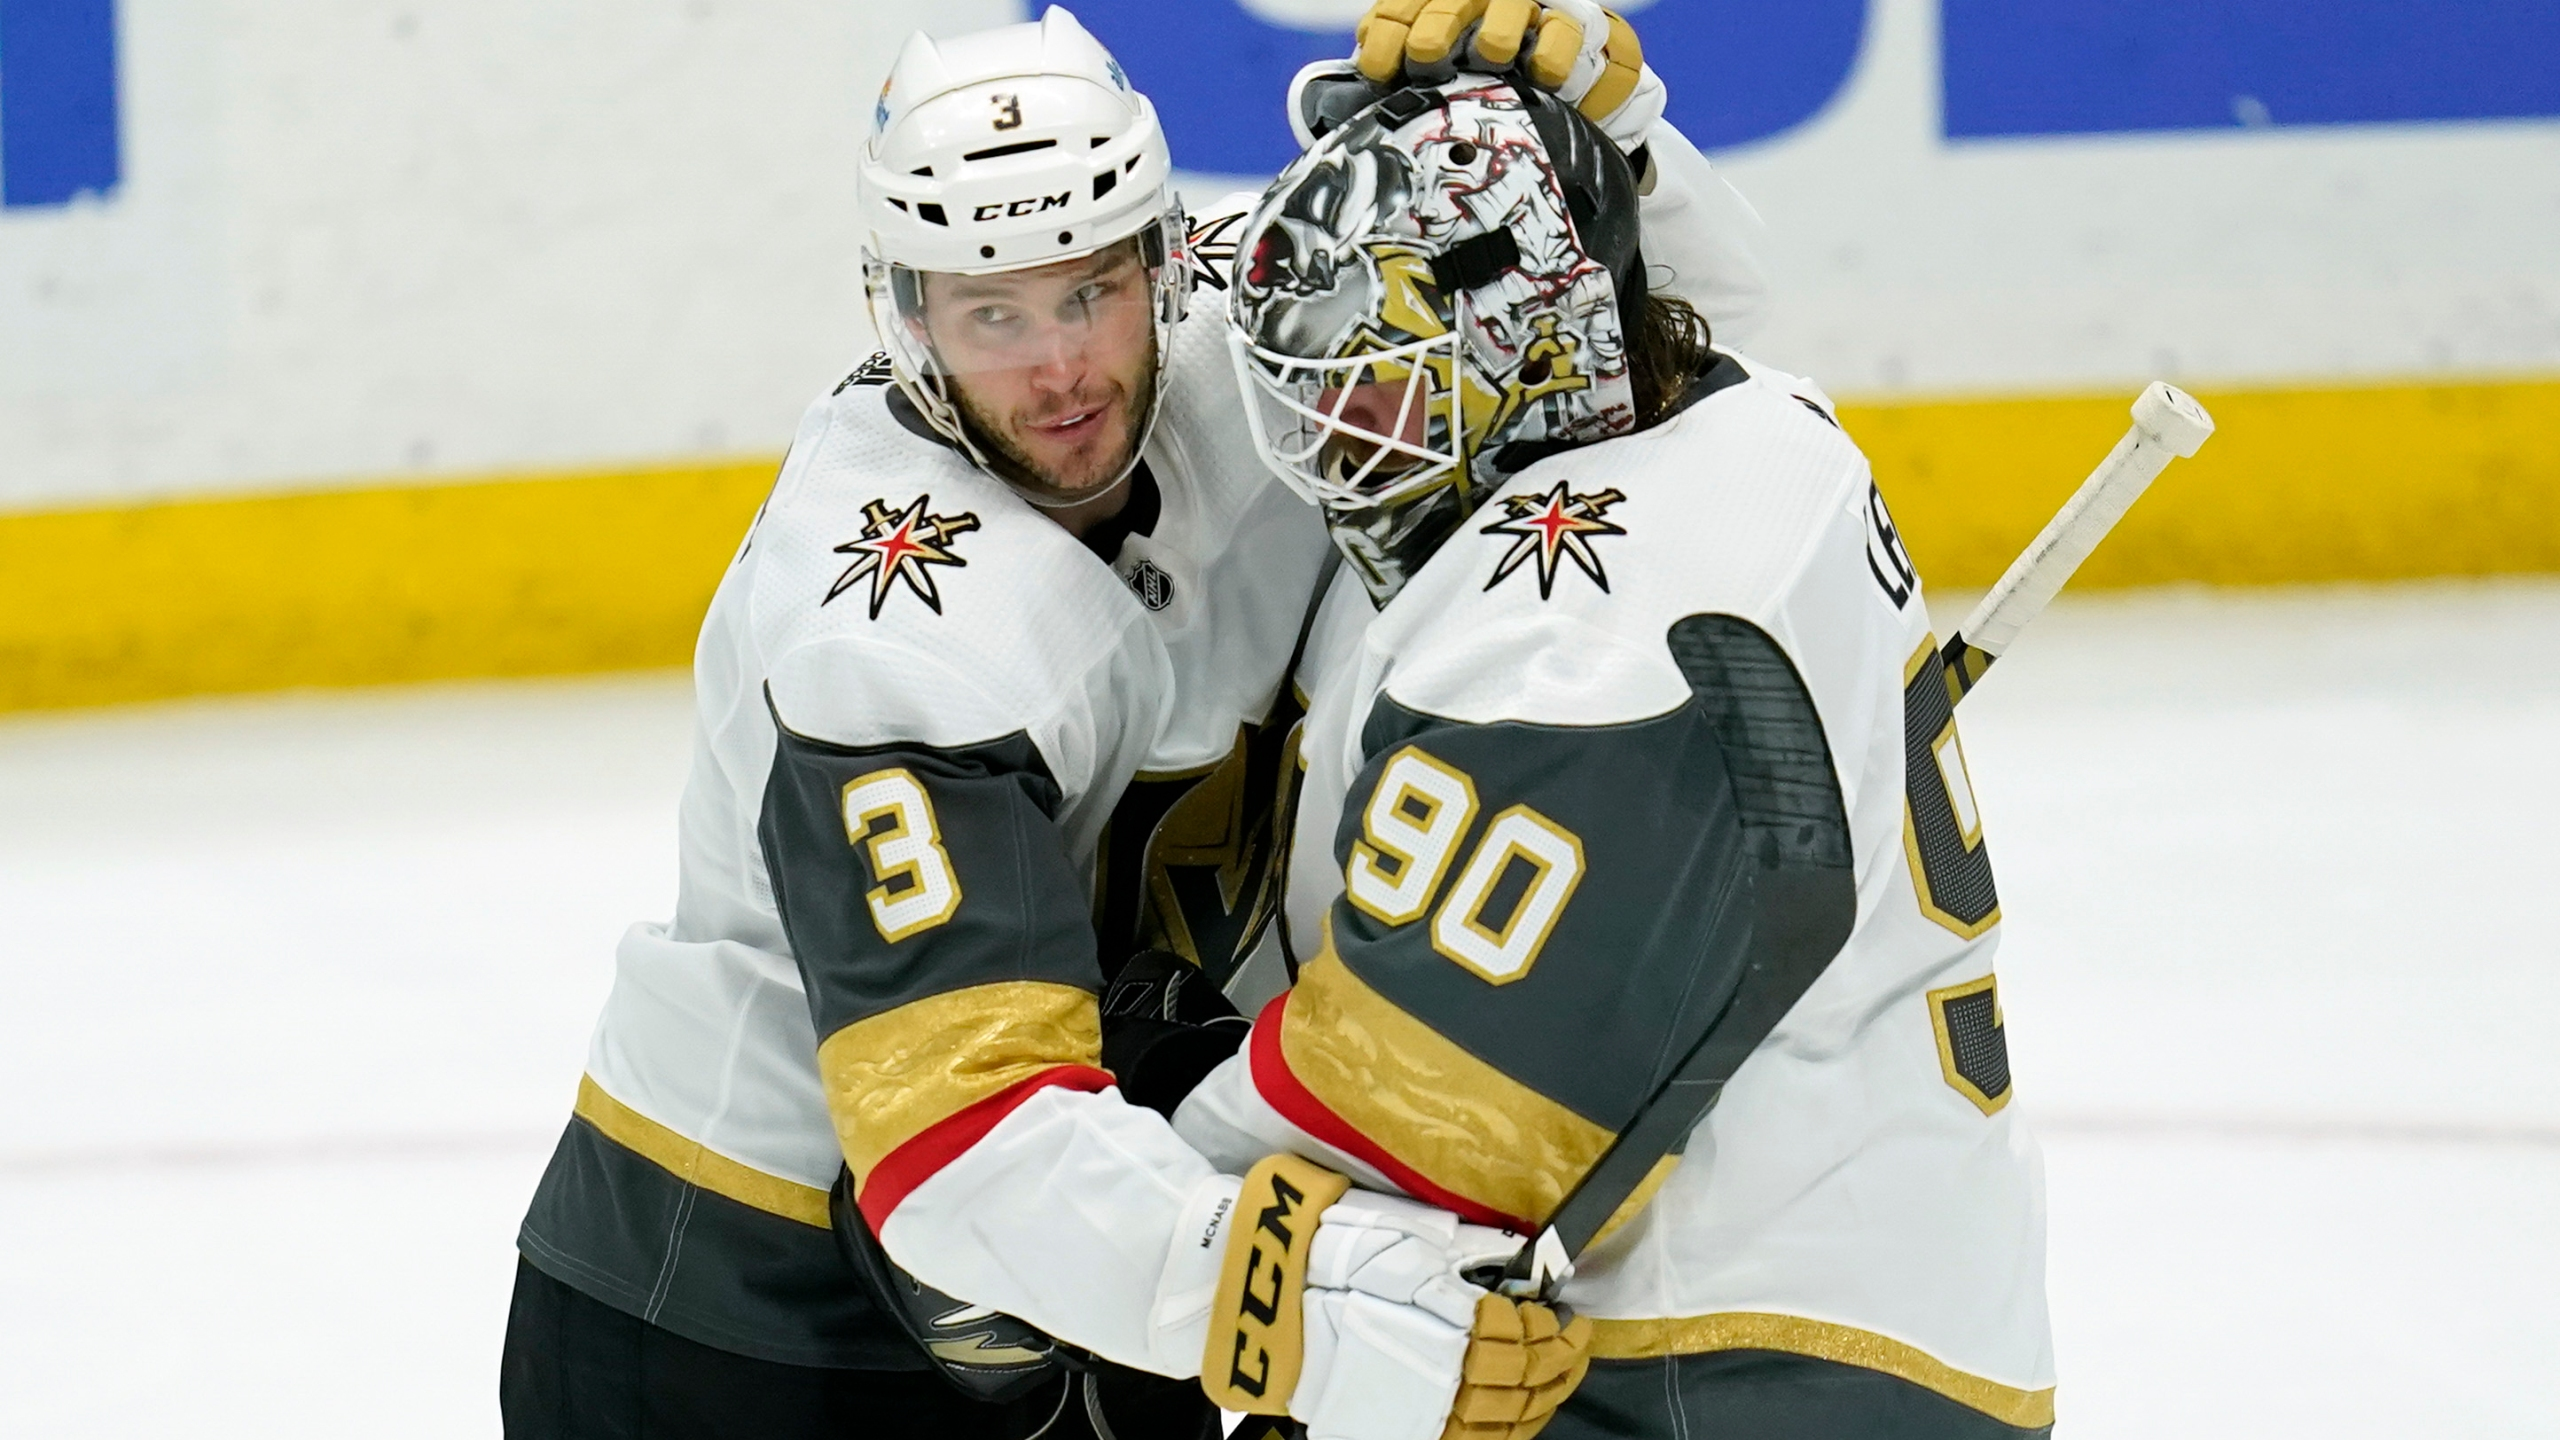 Vegas Golden Knights defenseman Brayden McNabb (3) and goaltender Robin Lehner (90) celebrate a 4-0 win over the Anaheim Ducks after their NHL hockey game in Anaheim on April 16, 2021. (Ashley Landis / Associated Press)